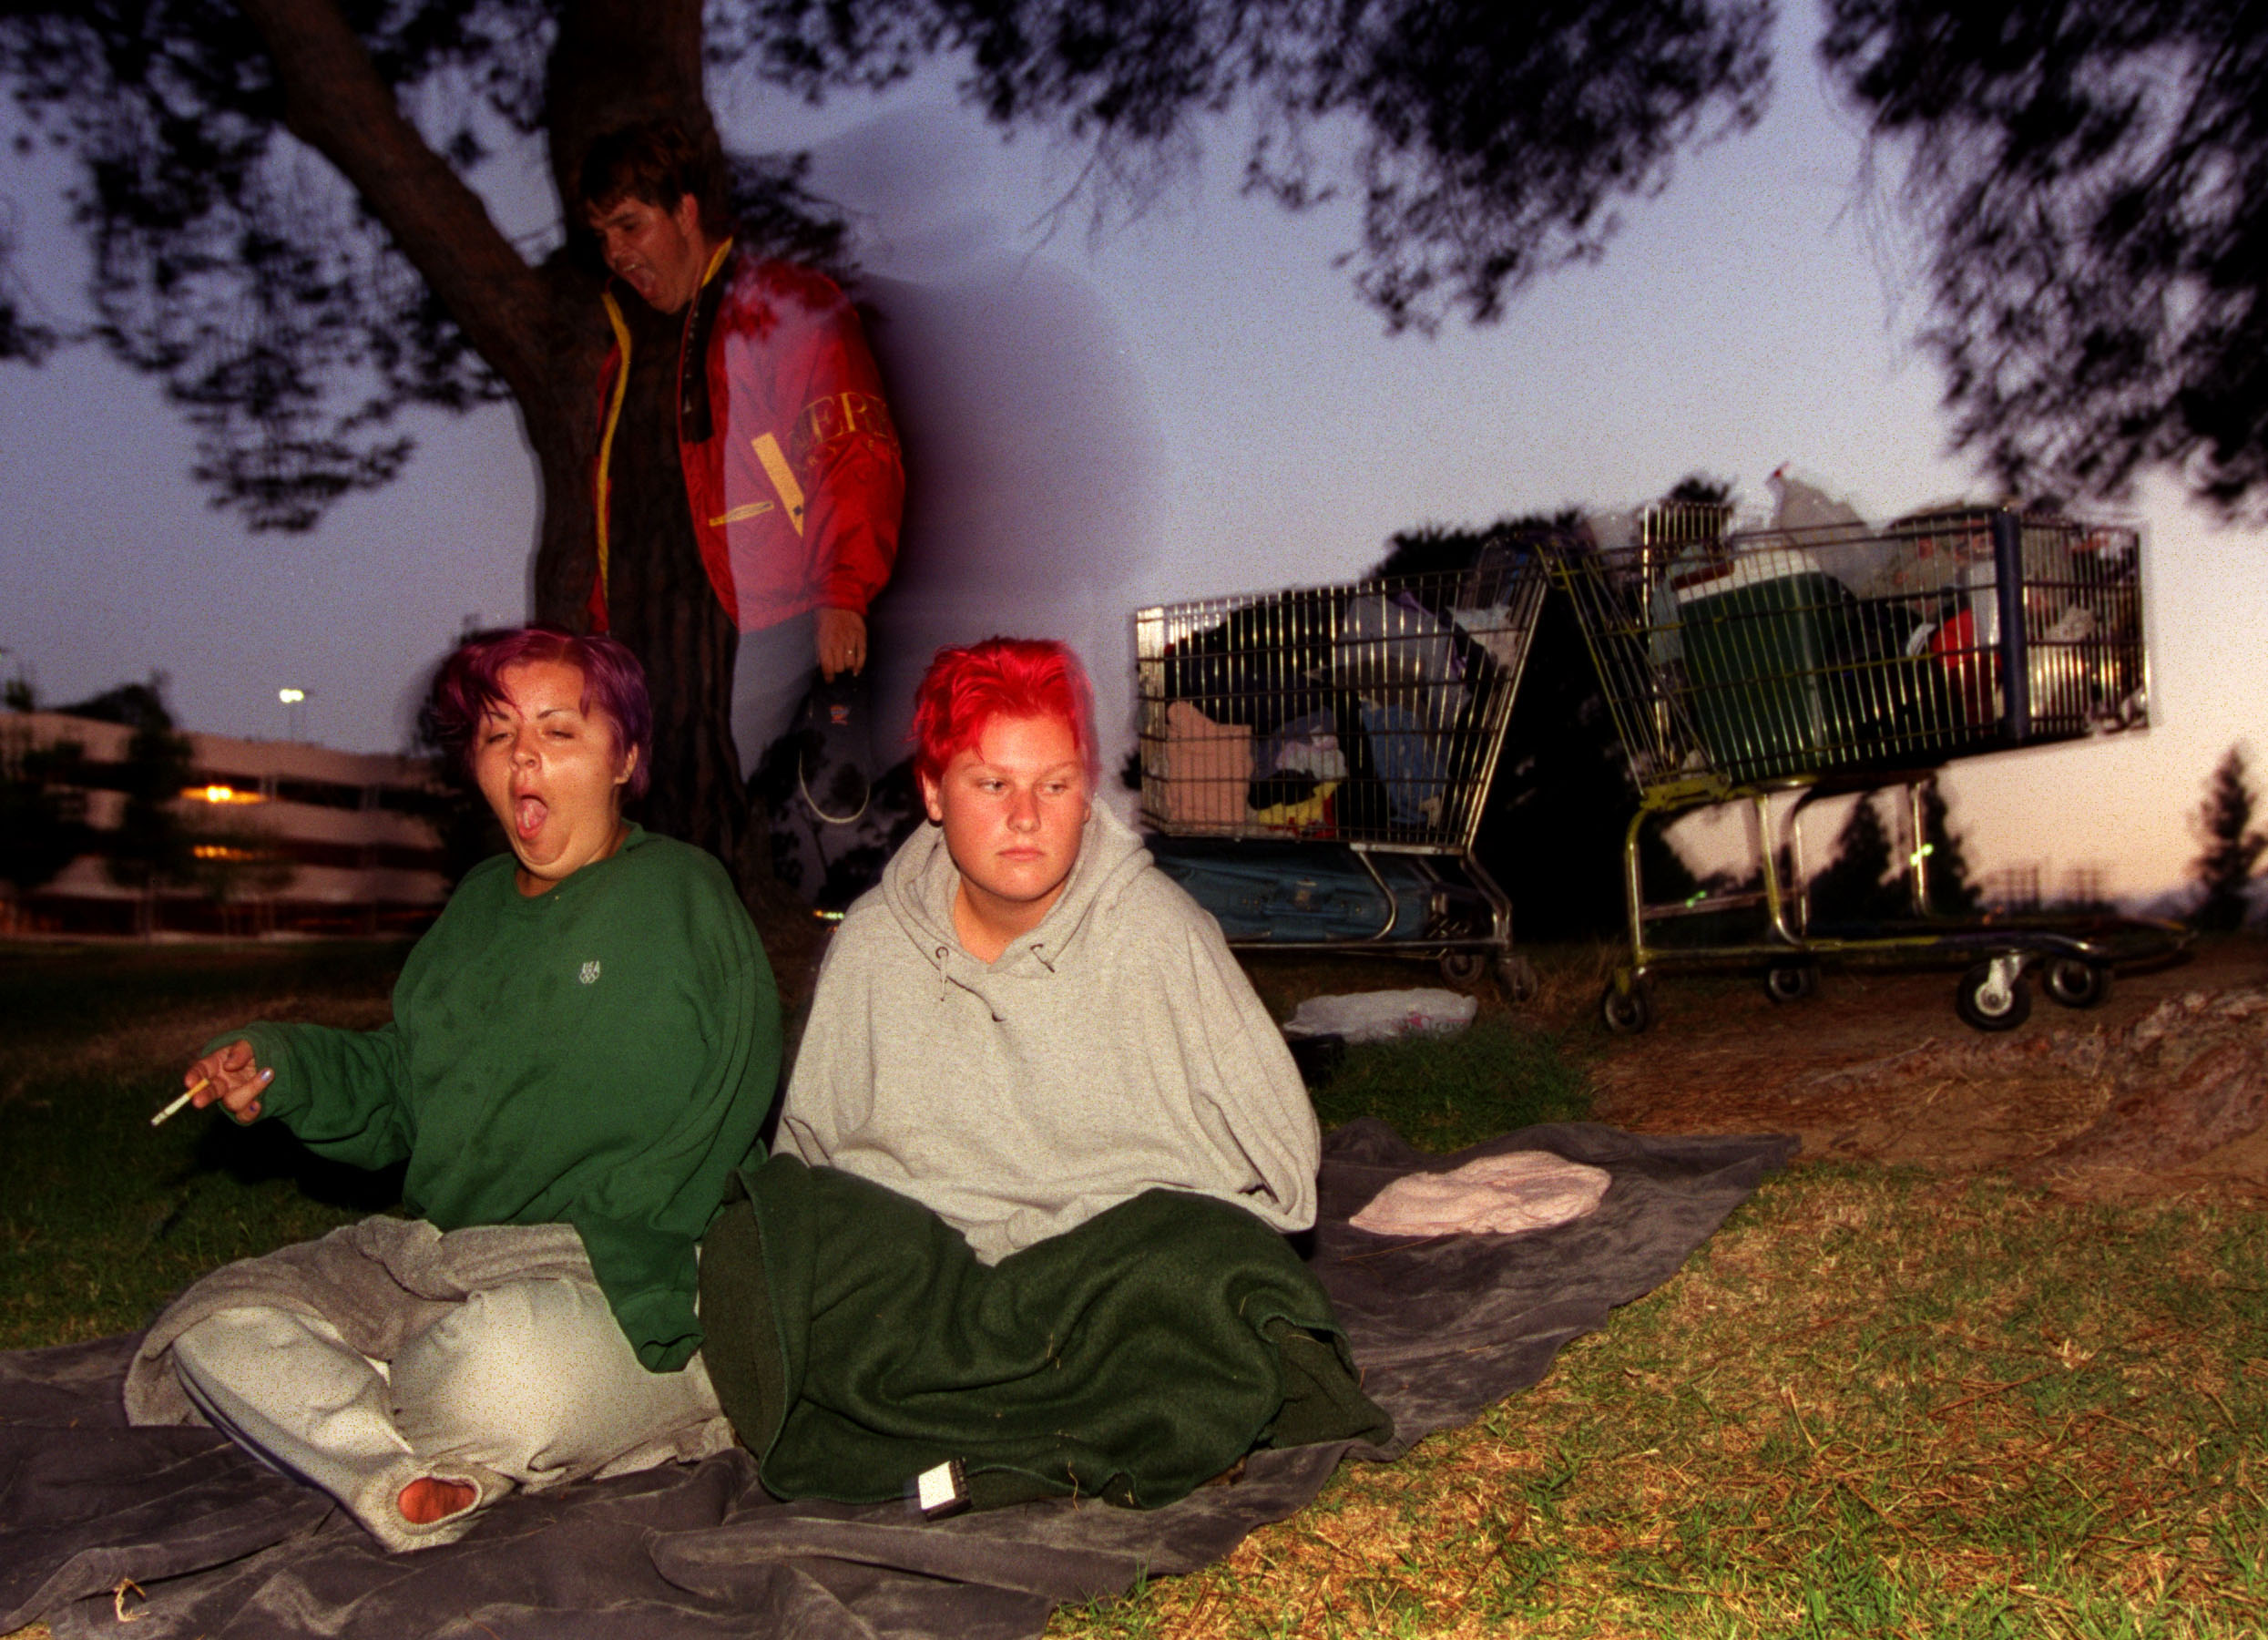 Wrapped in sweatshirts and blankets against the cool summer morning, Janea right, and her friends Dianna and Matt Dewey adjust to their new home with amazing ease. Wedged between East LA's municipal court, the freeway and a Sheriff's station, Belvedere Park, located on a few grassy acres, is where they are squatting these days. ©Gail Fisher Los Angeles Times